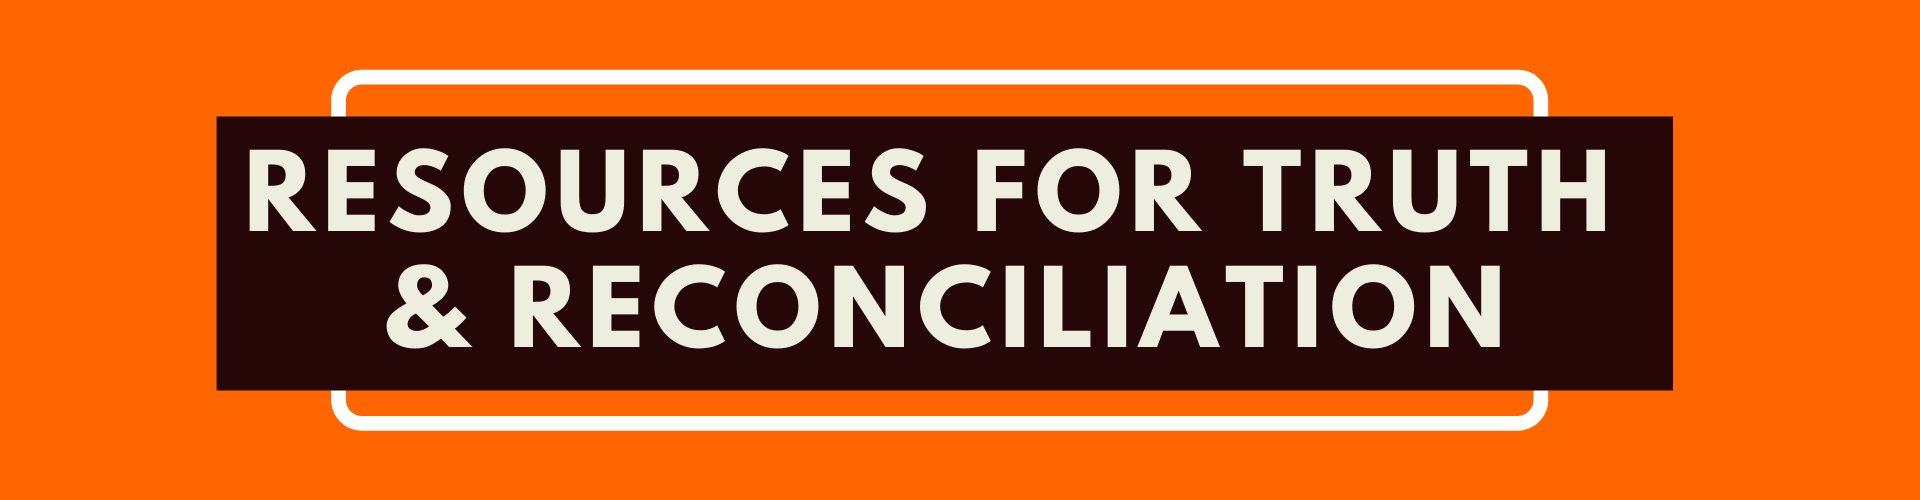 Resources for Truth and Reconciliation (text on orange background)